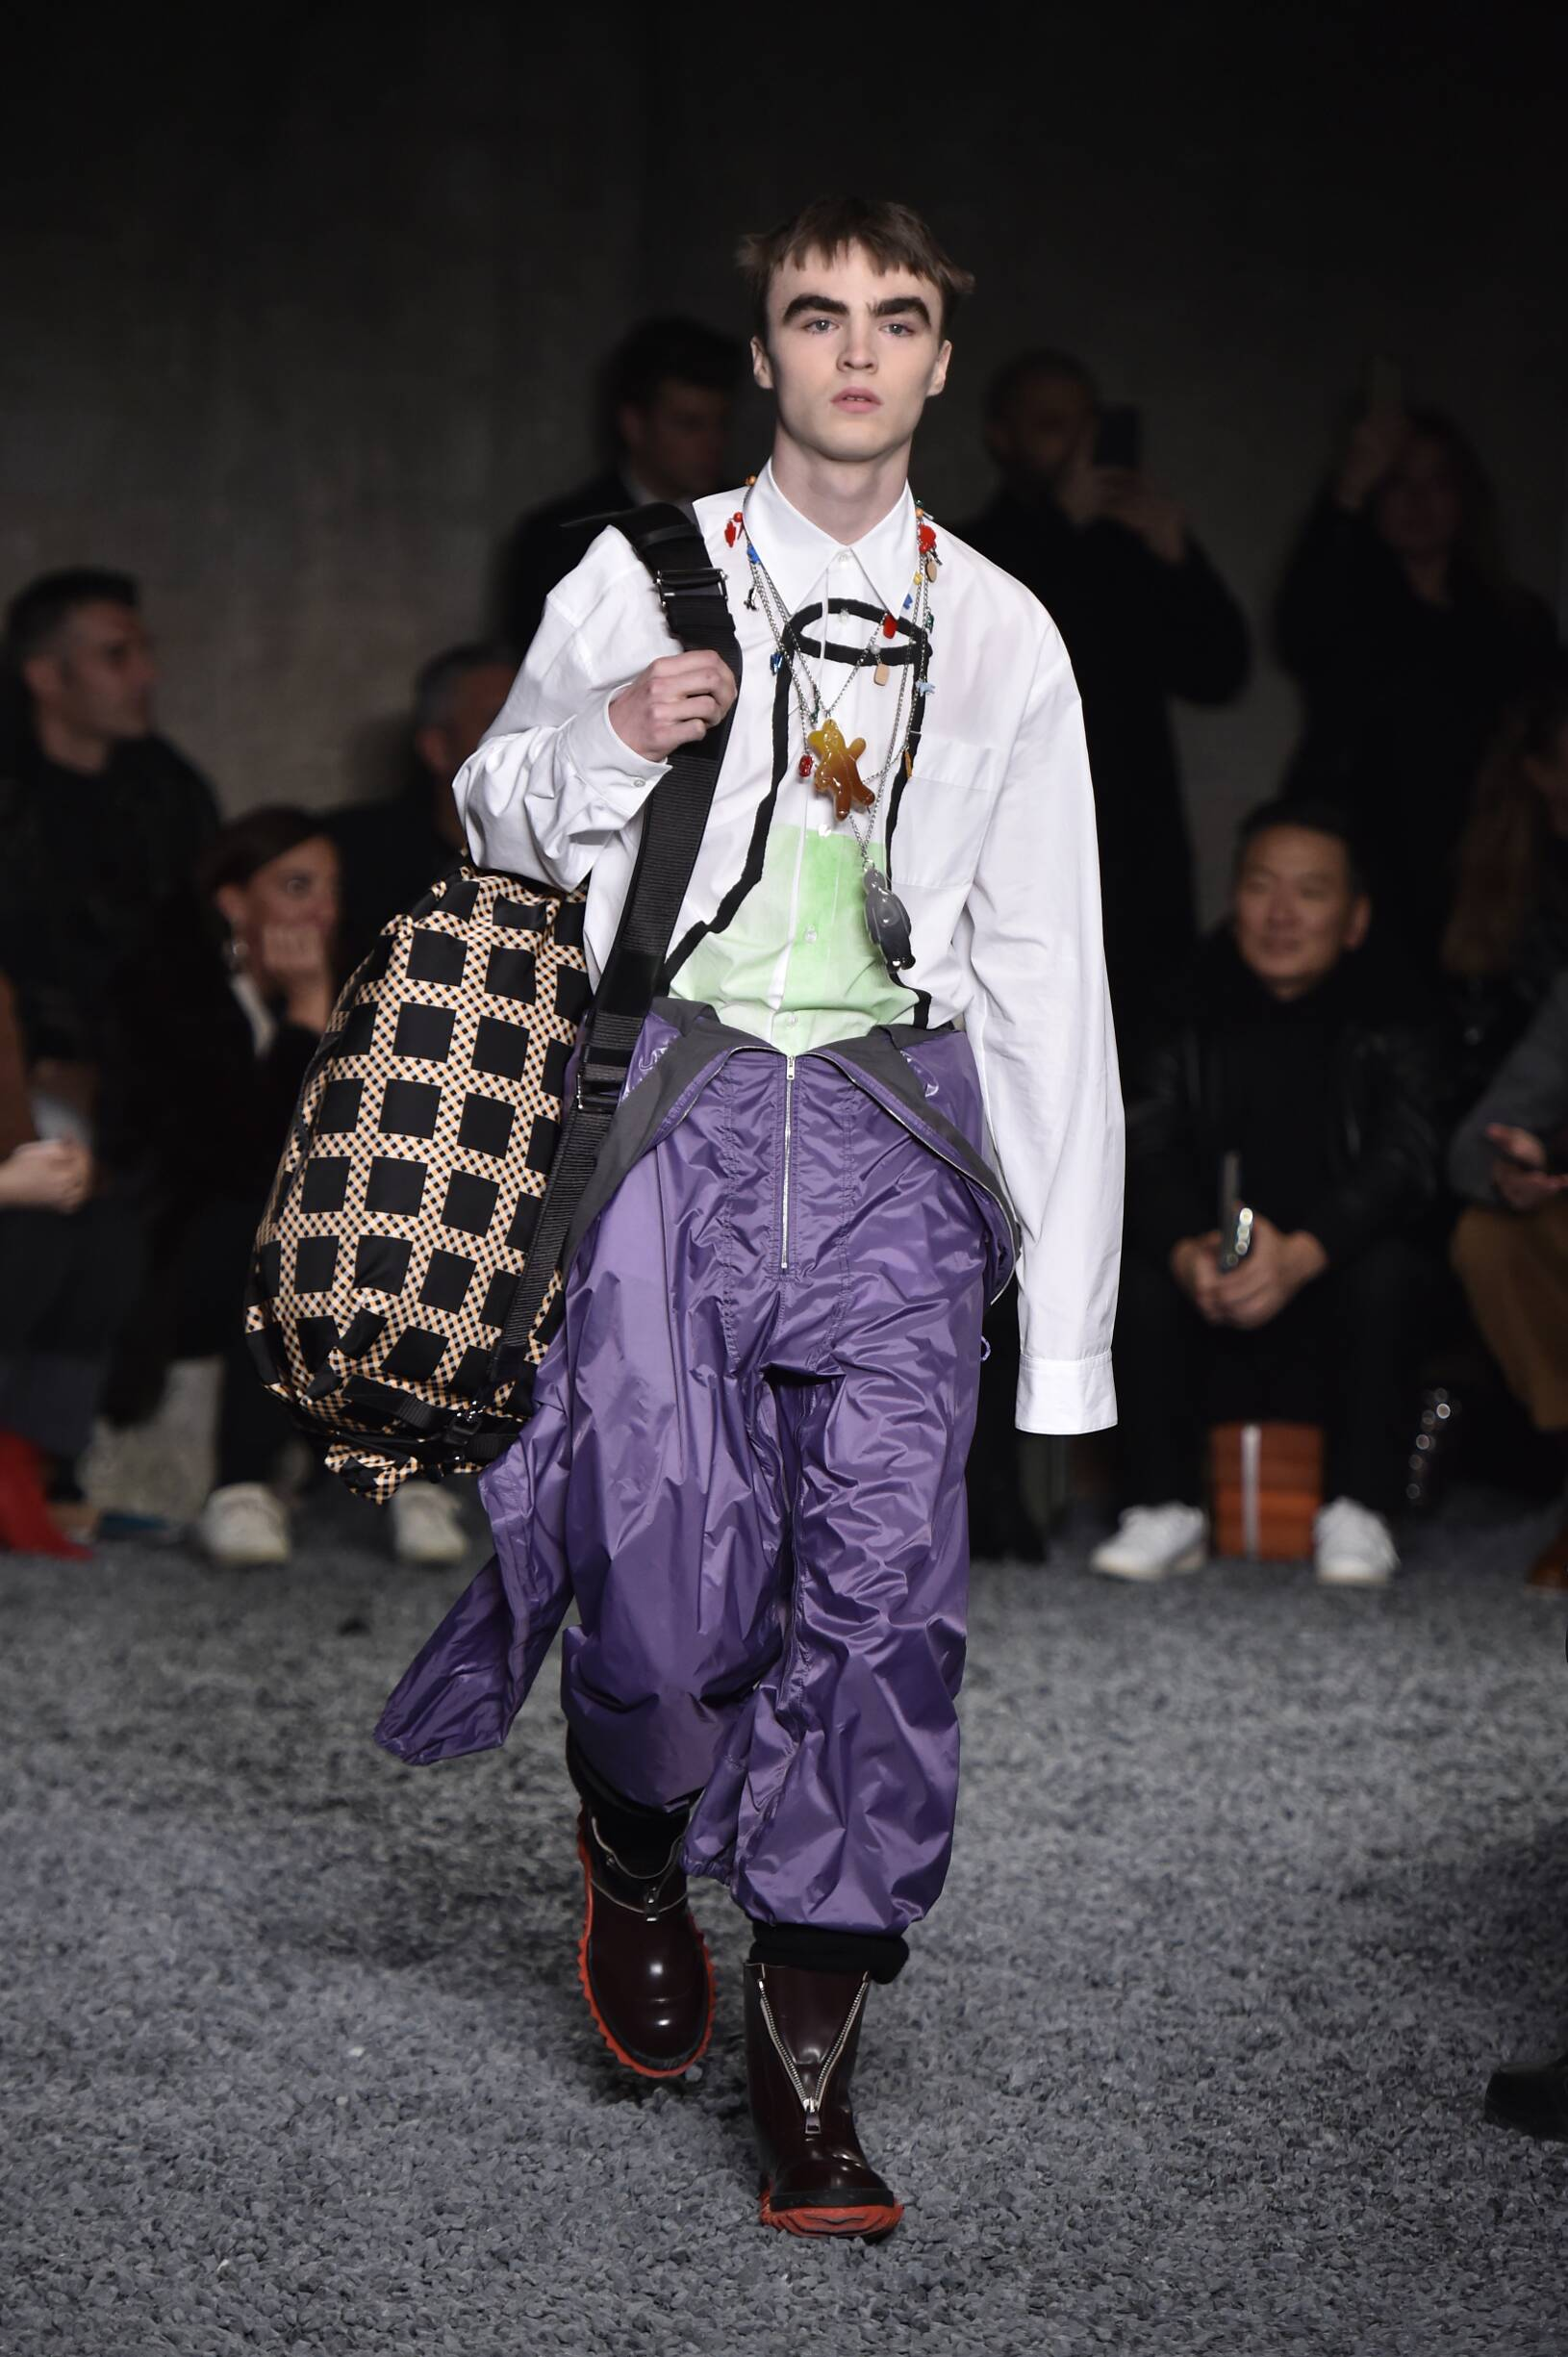 Marni Winter 2018 Man Catwalk